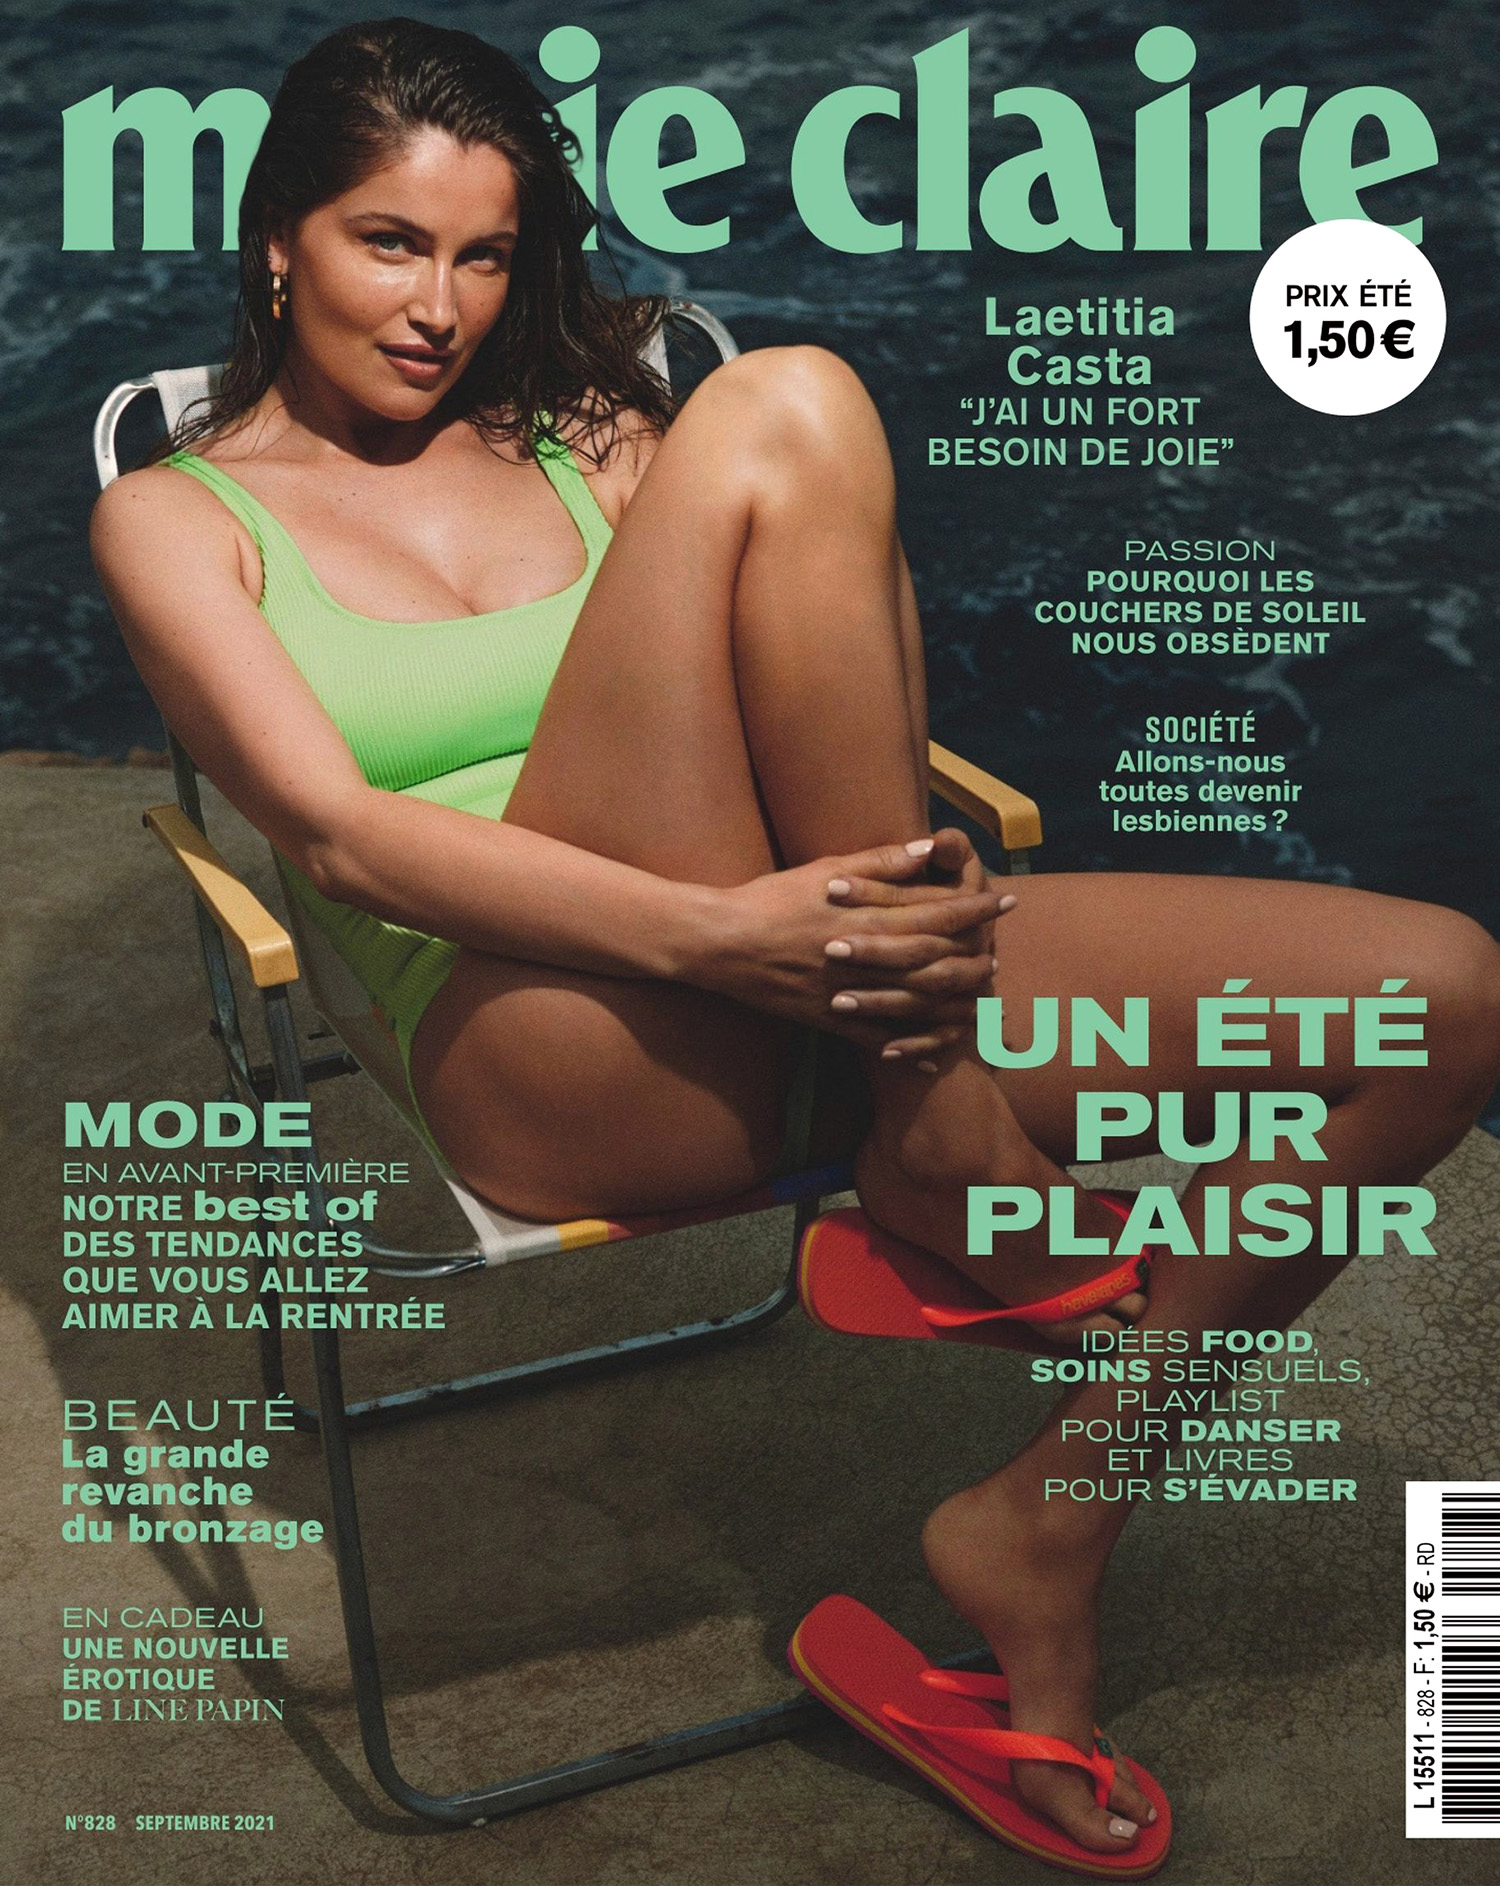 Laetitia Casta covers Marie Claire France September 2021 by Van Mossevelde + N